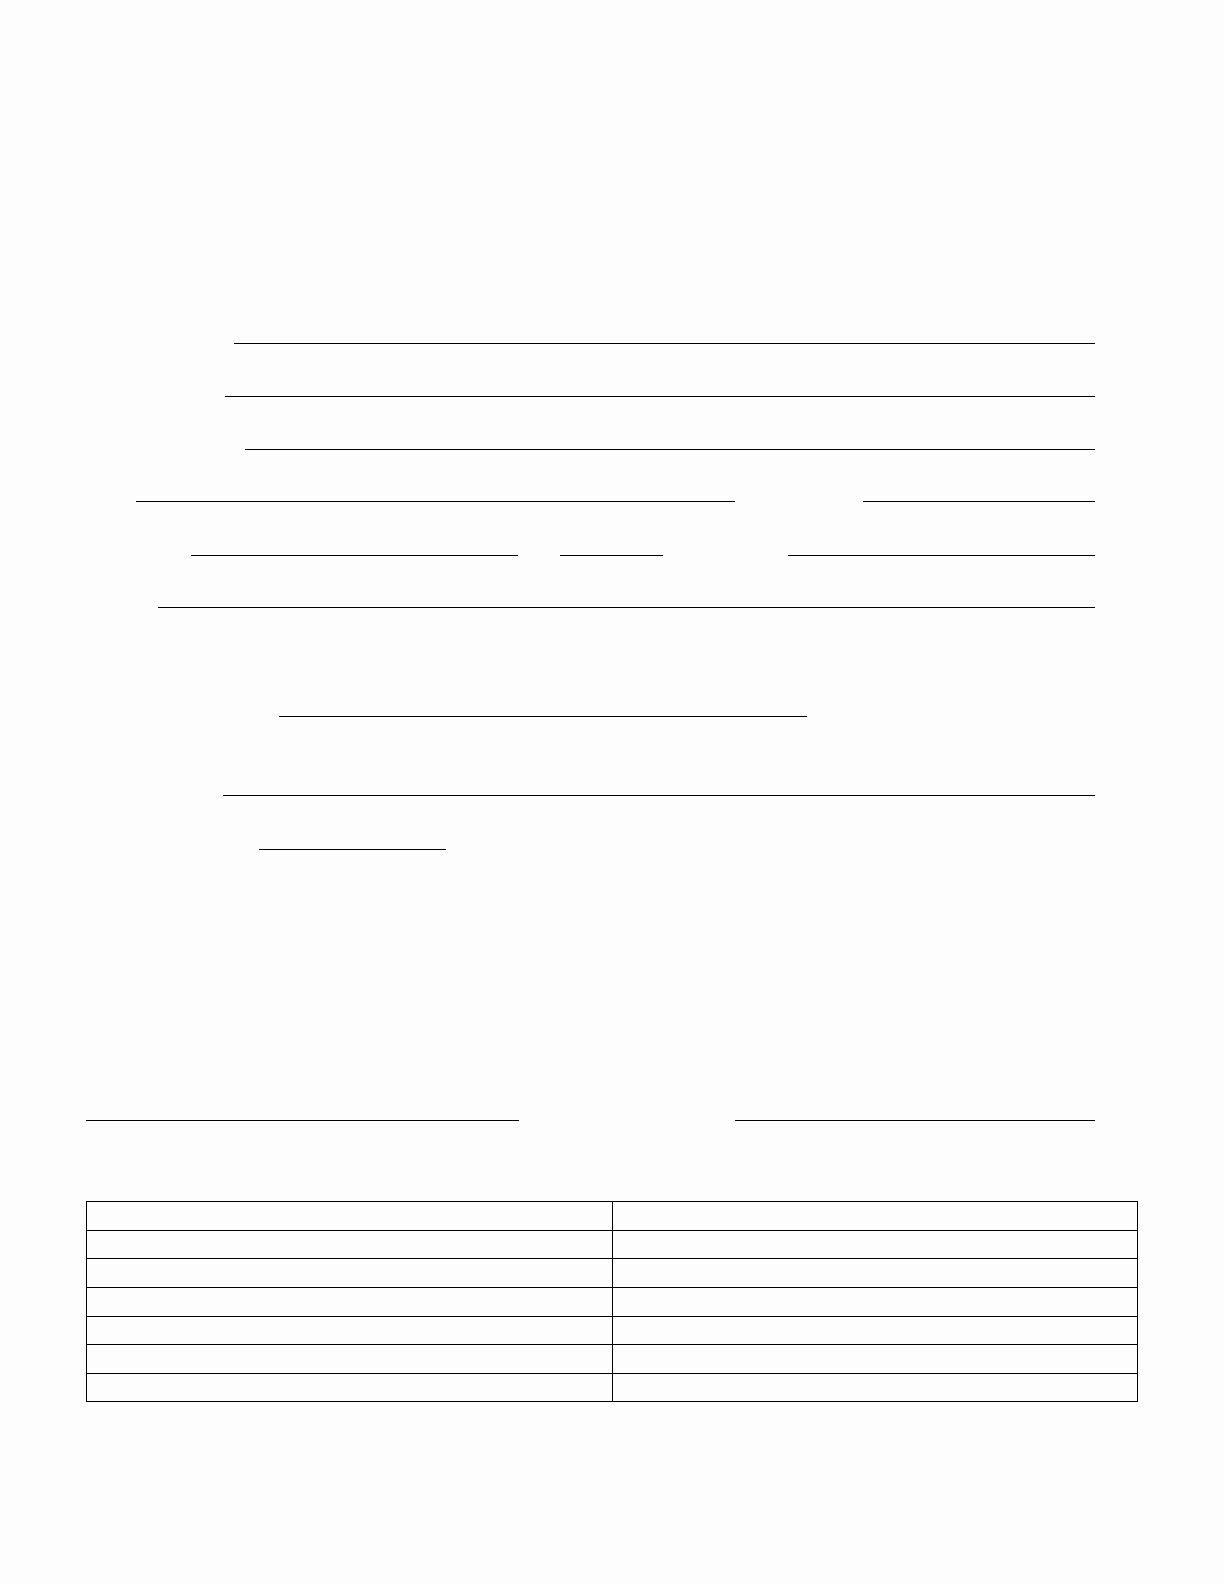 Free Vendor Application form Template Lovely Download Vendor Application Template for Free